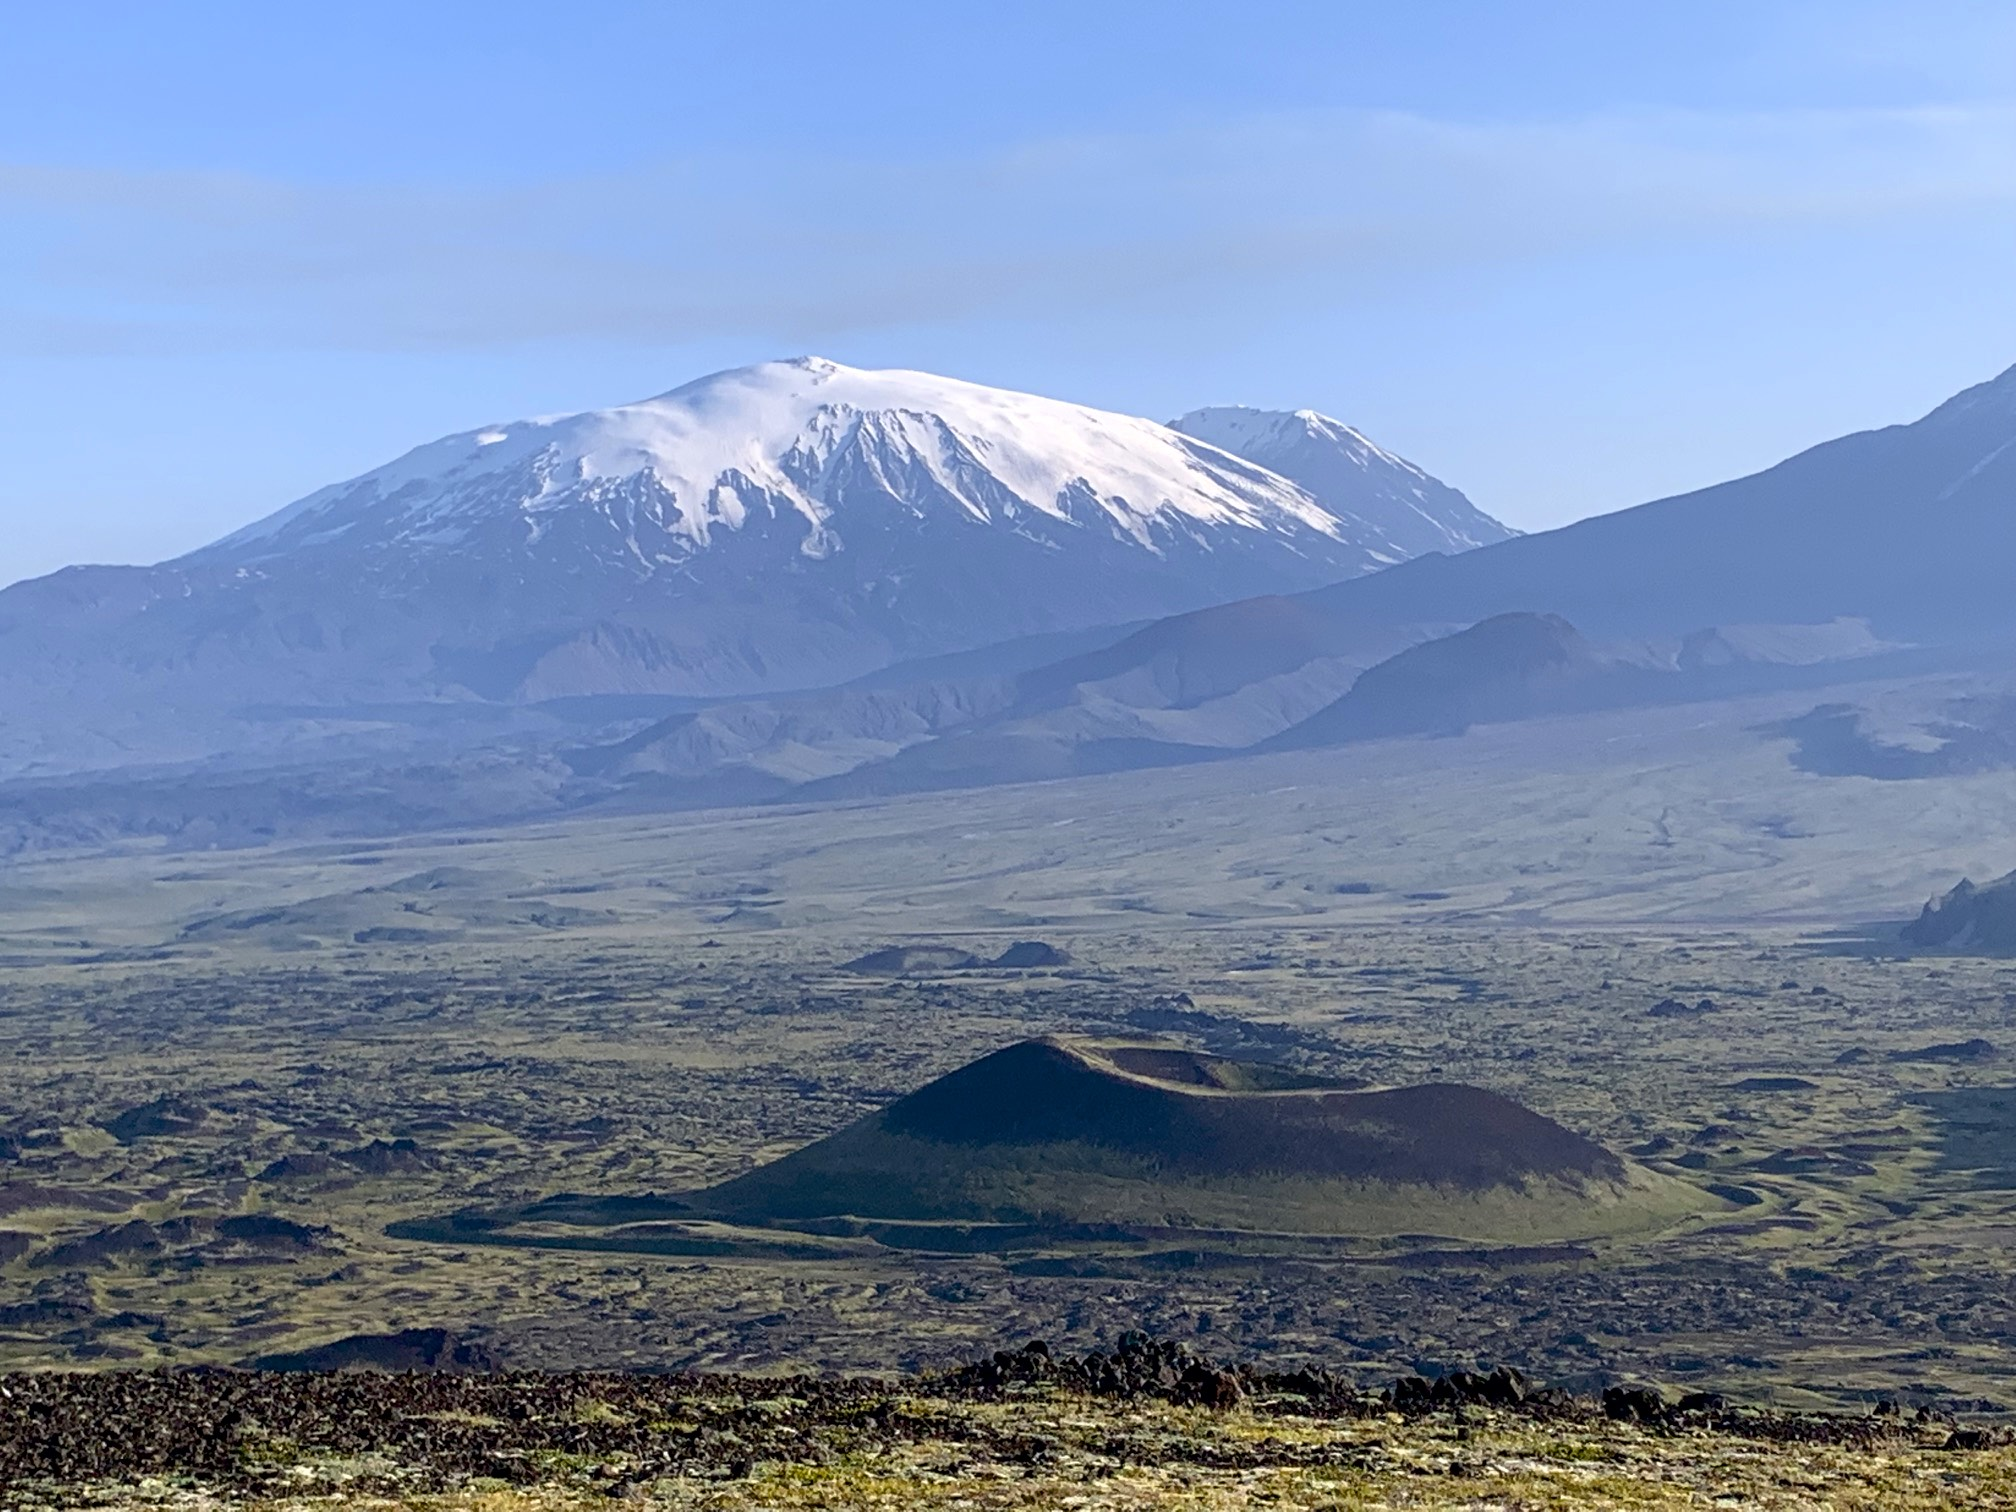 Ushkovsky Volcano together with Krestovsky Volcano are the biggest volcanic massif in Kamchatka. It is 3,943m high and 4,057m high and the base is 70 x 40km.